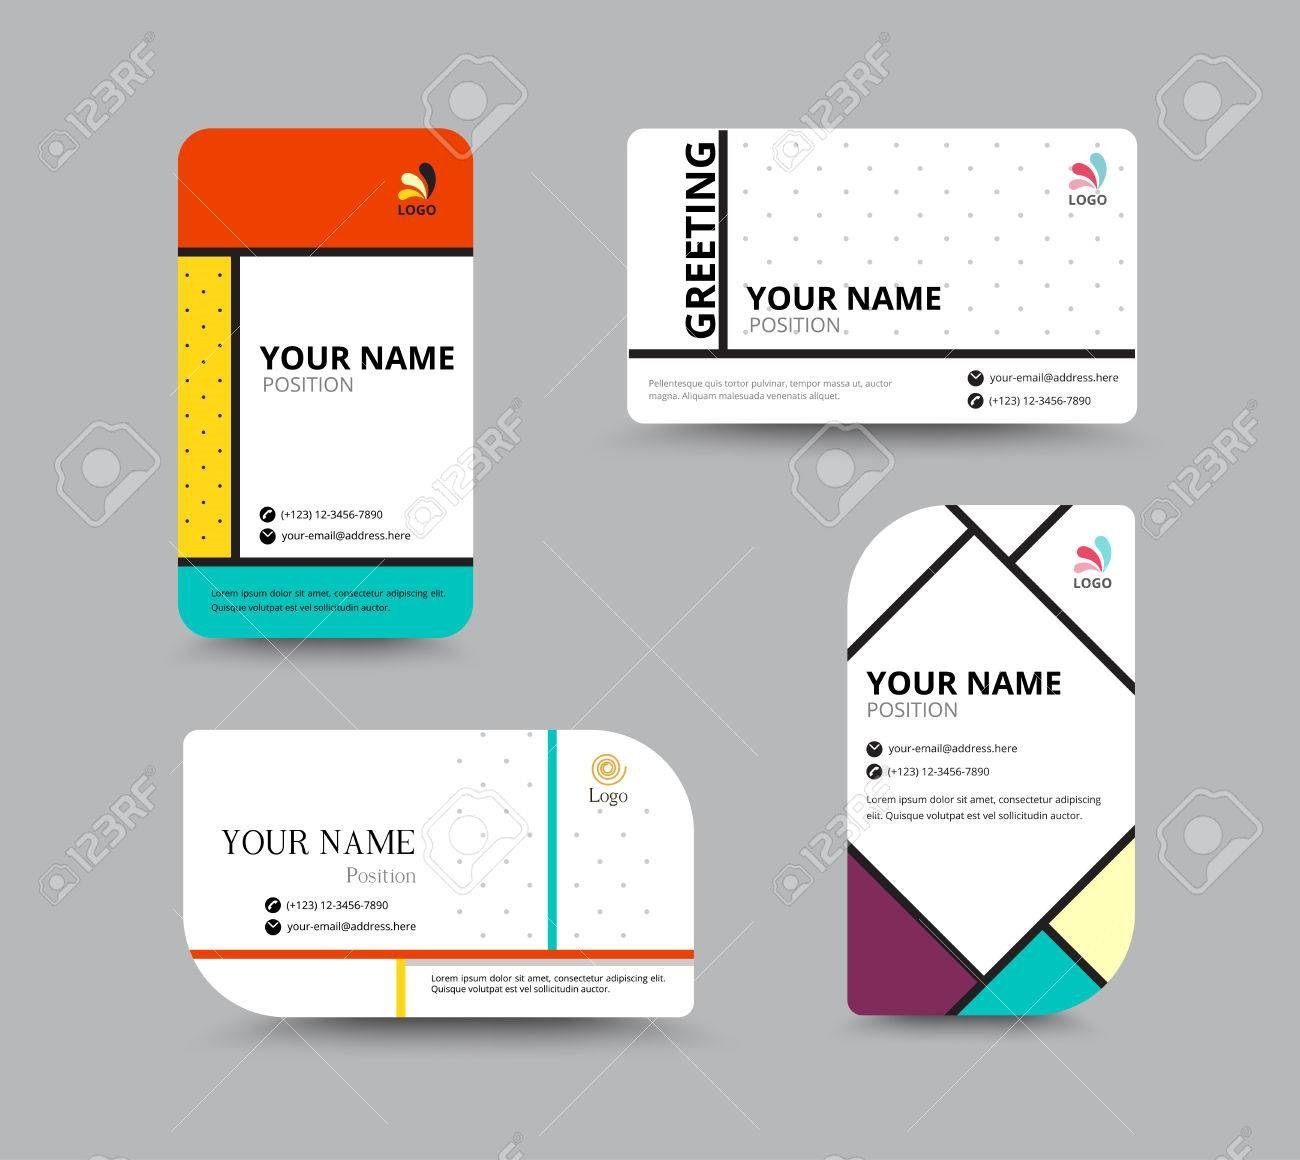 002 Awesome Name Tag Design Template High Definition  Free Download PsdFull